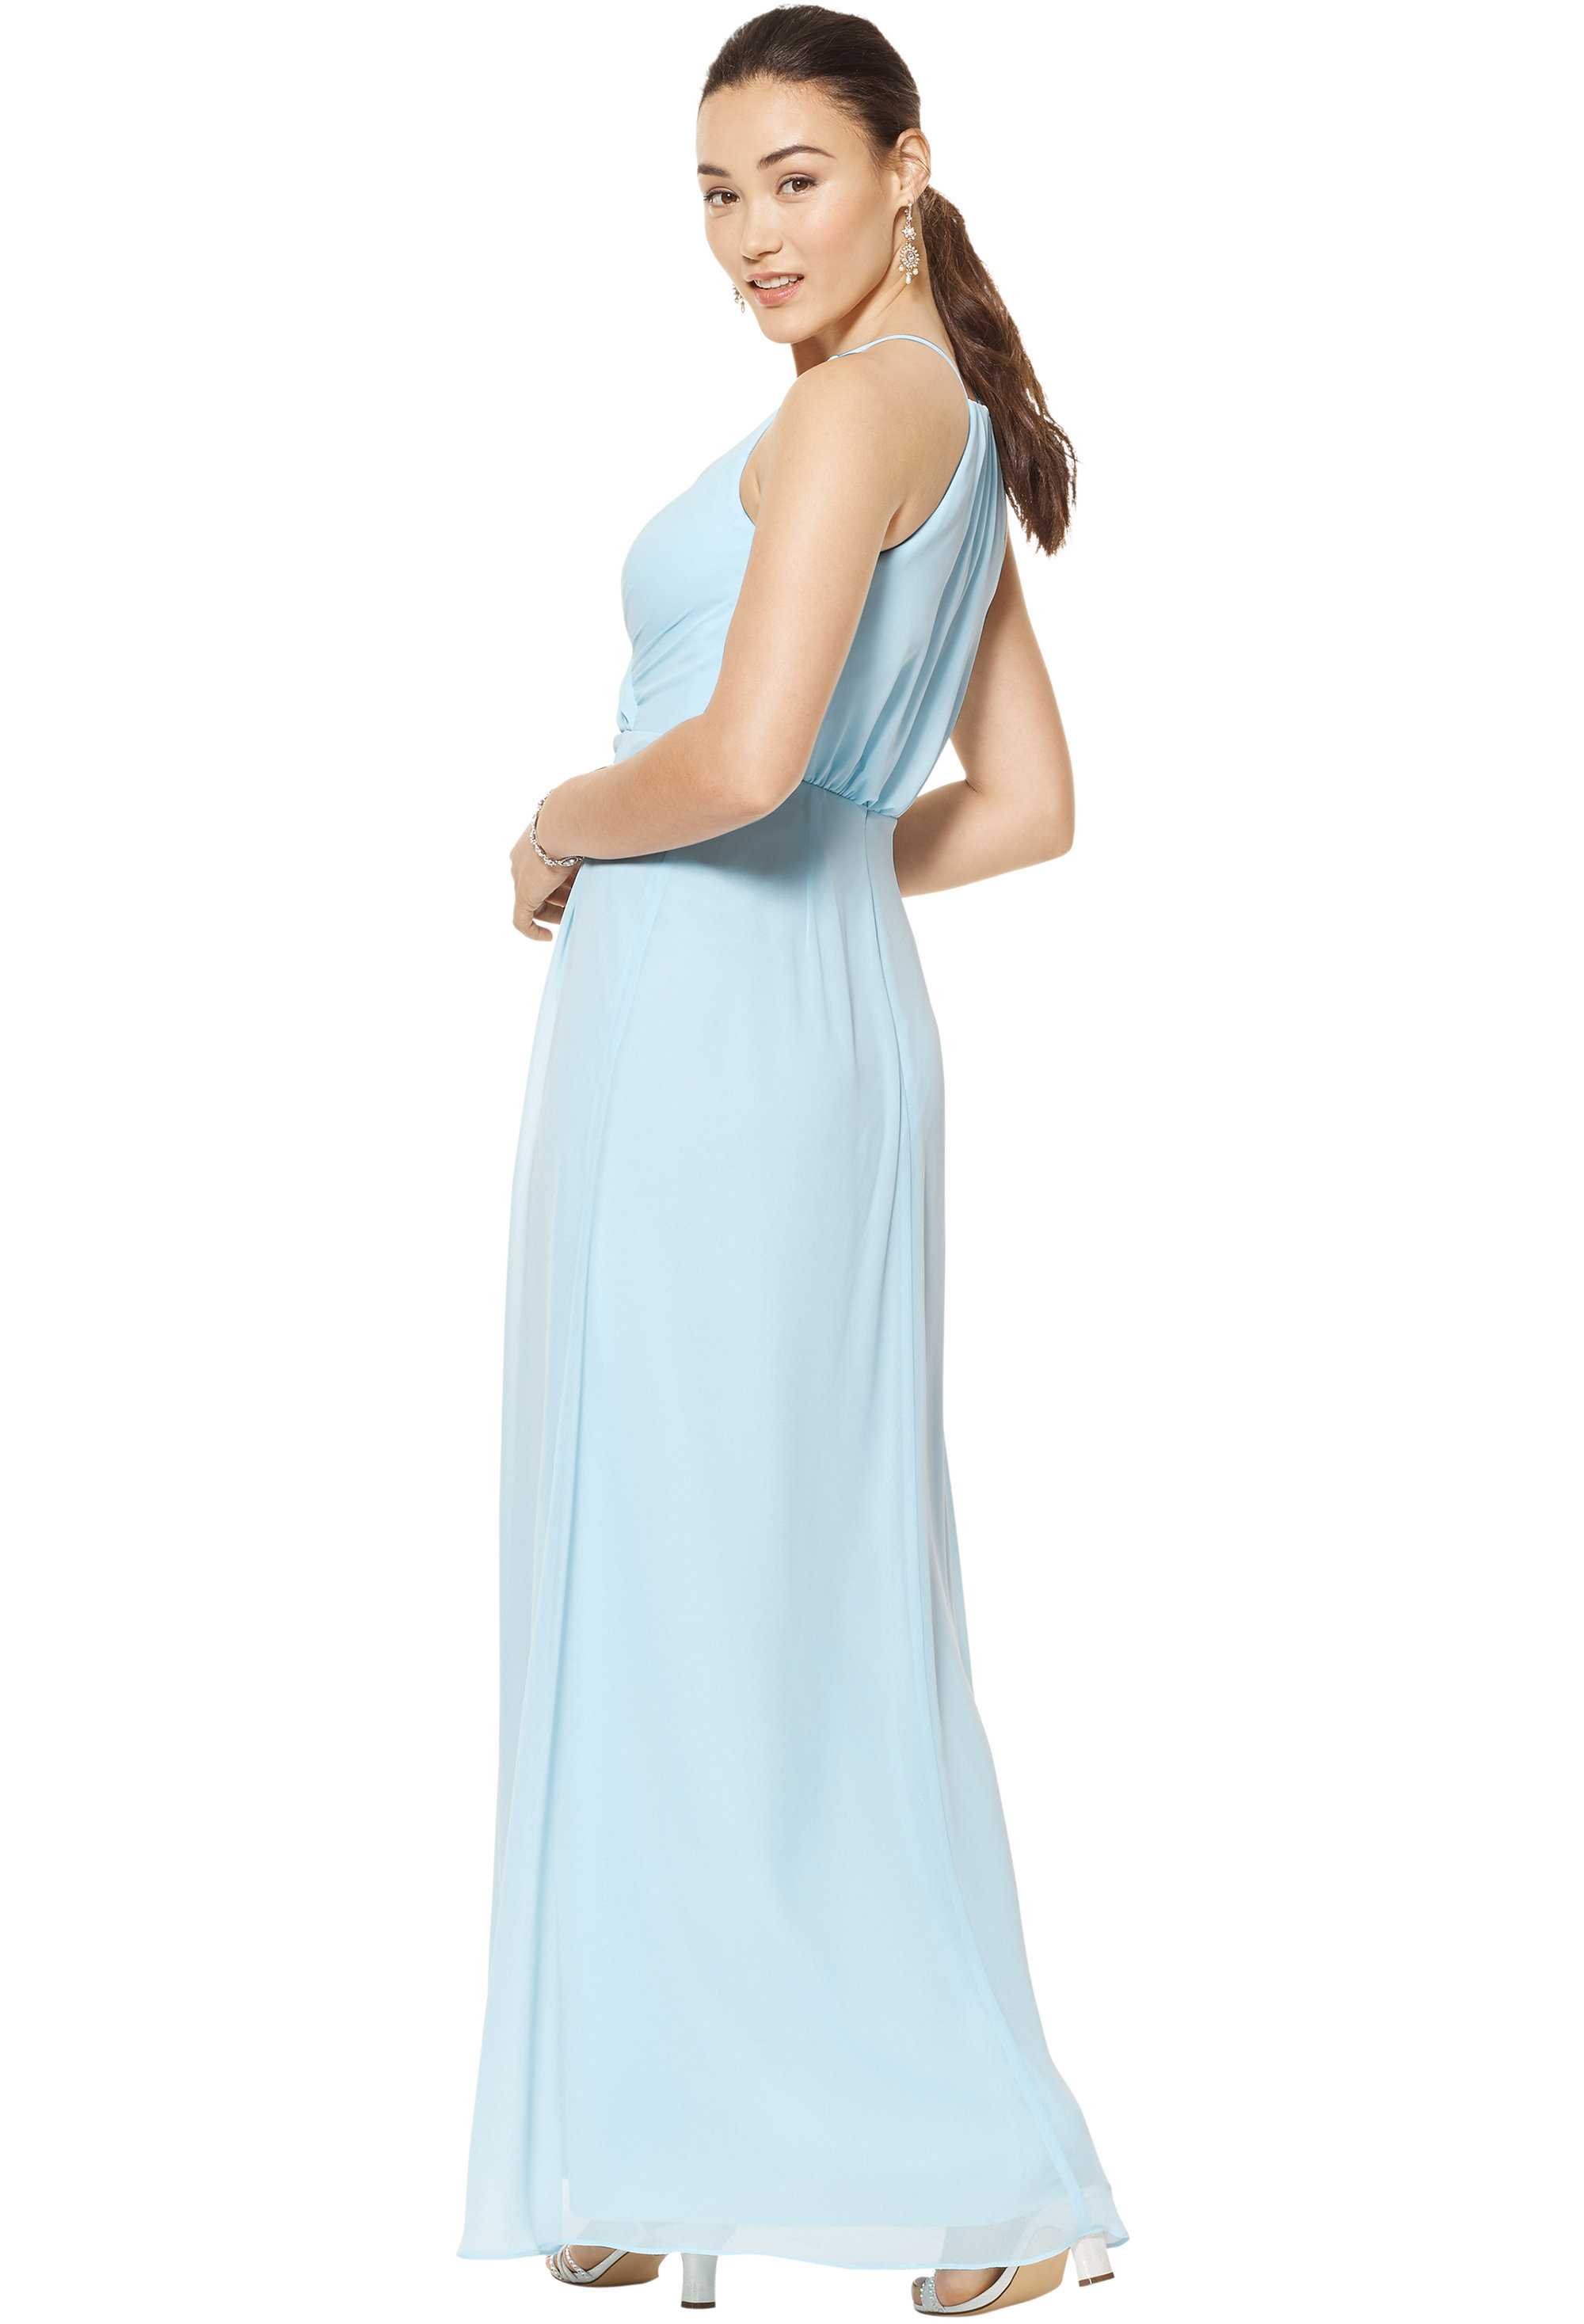 Bill Levkoff VIOLET Chiffon V-neck A-line gown, $158.00 Back